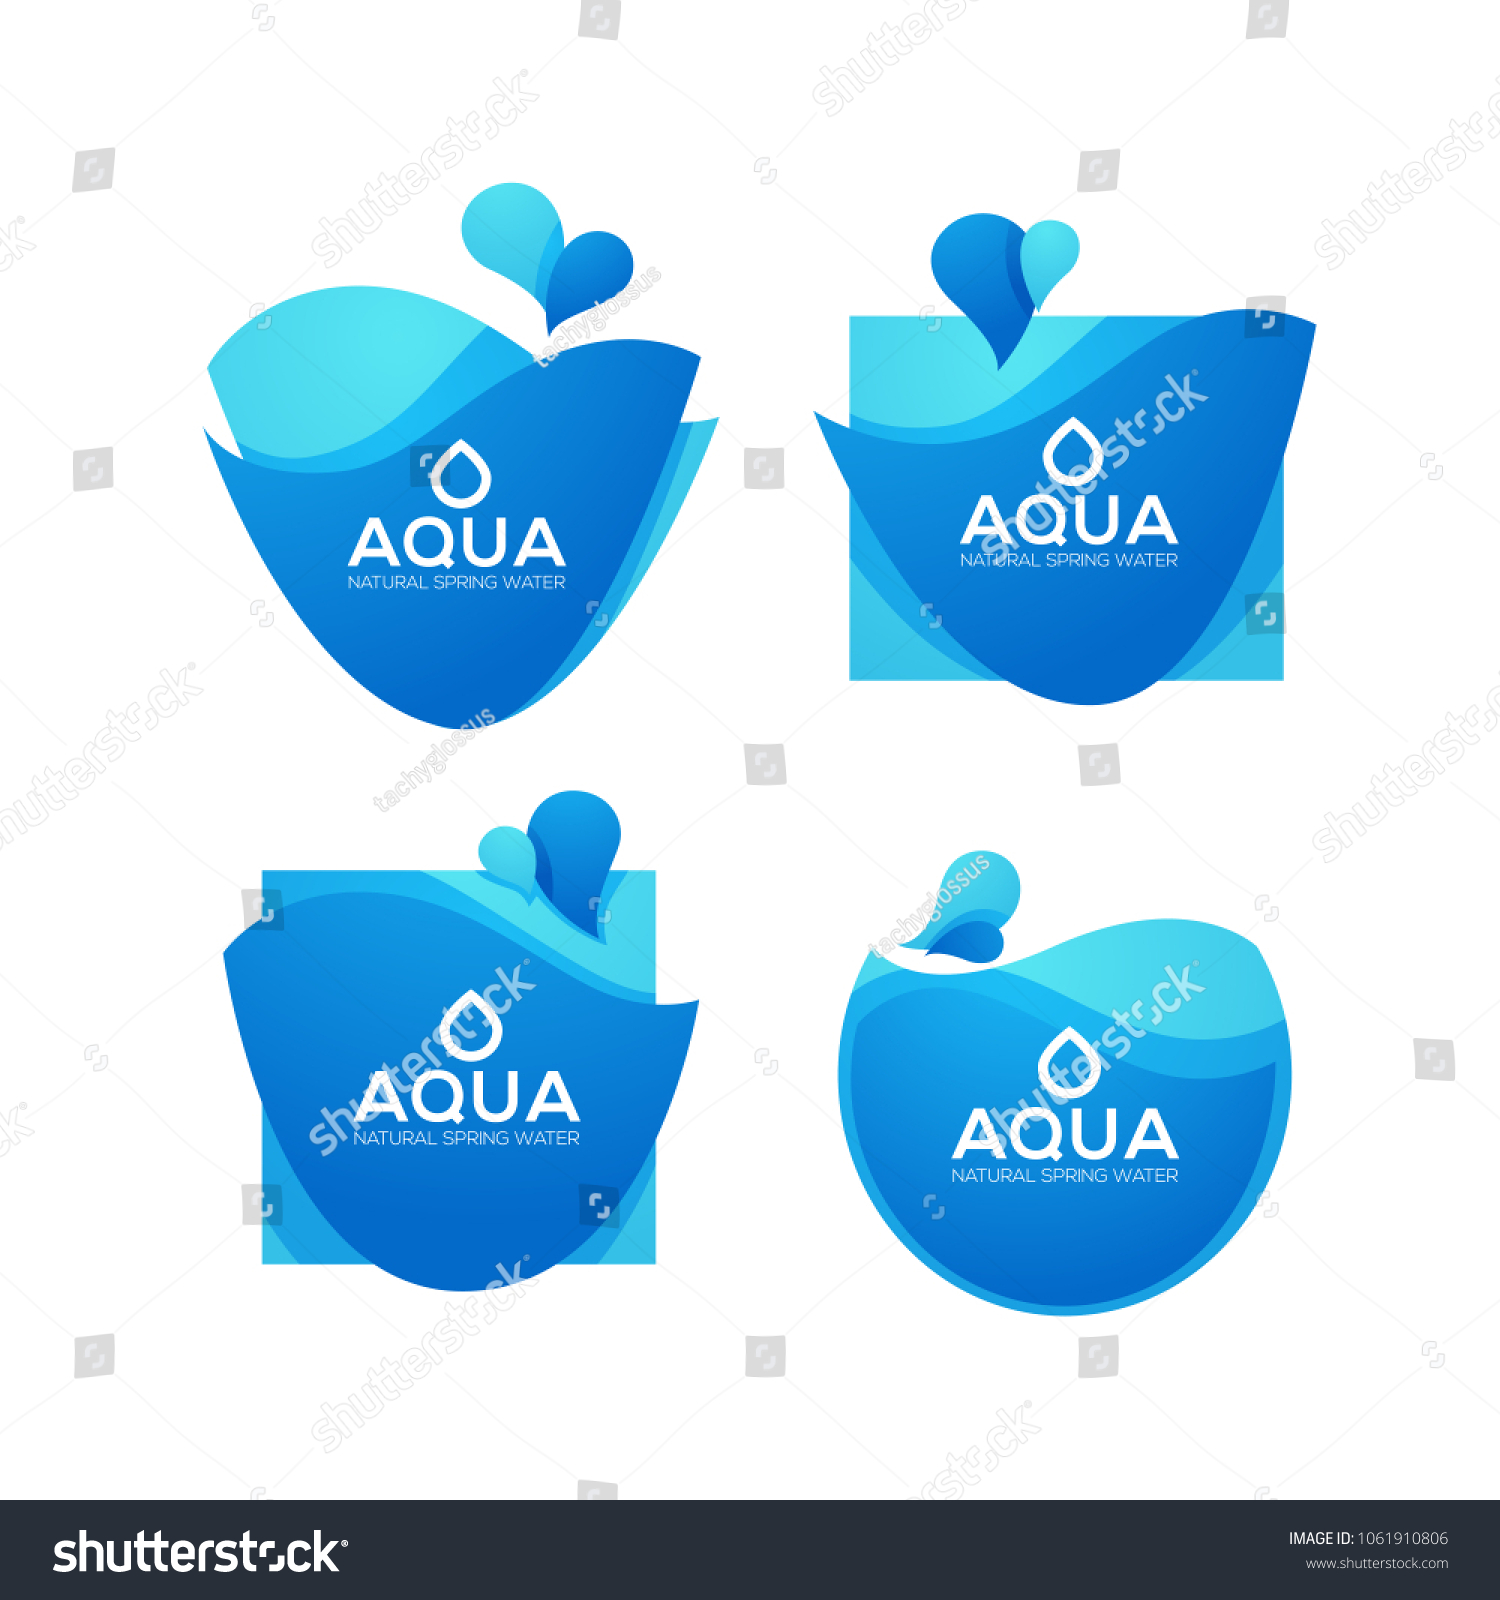 hight resolution of natural spring water vector logo labels and stickers templates with aqua drops